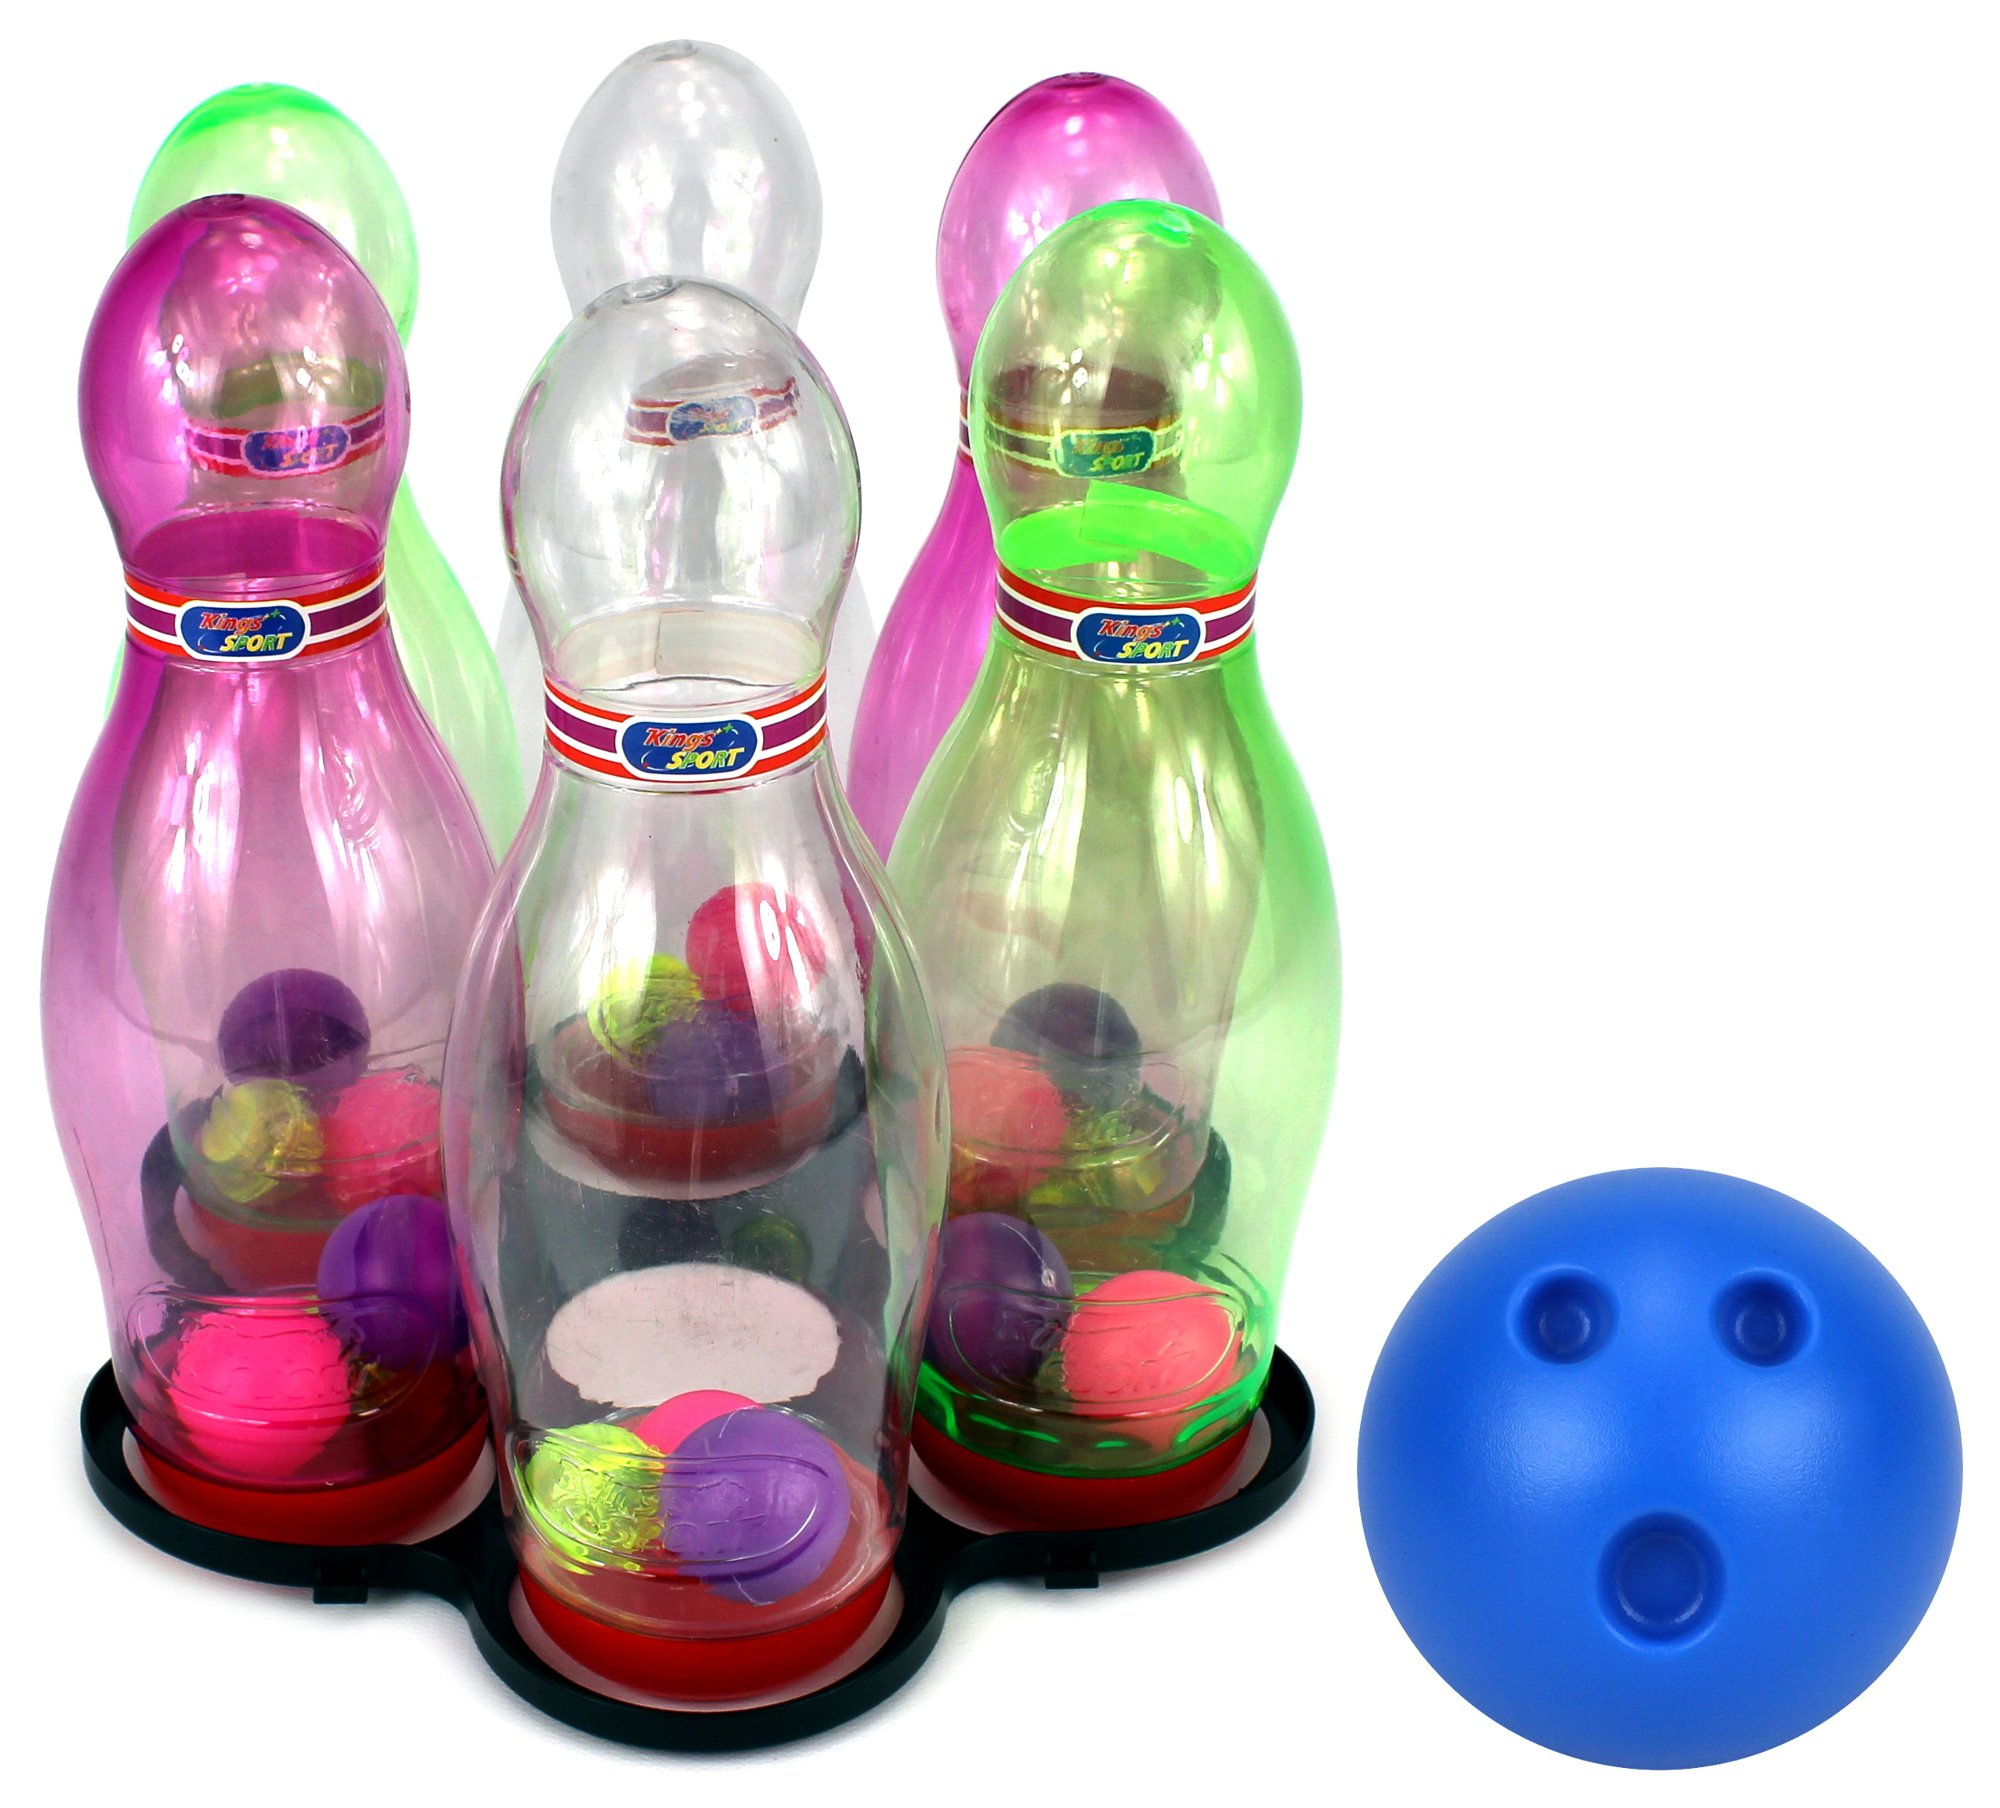 VT See Through Light Up Children's Toy Bowling Playset w/ 6 Pins, Bowling Ball